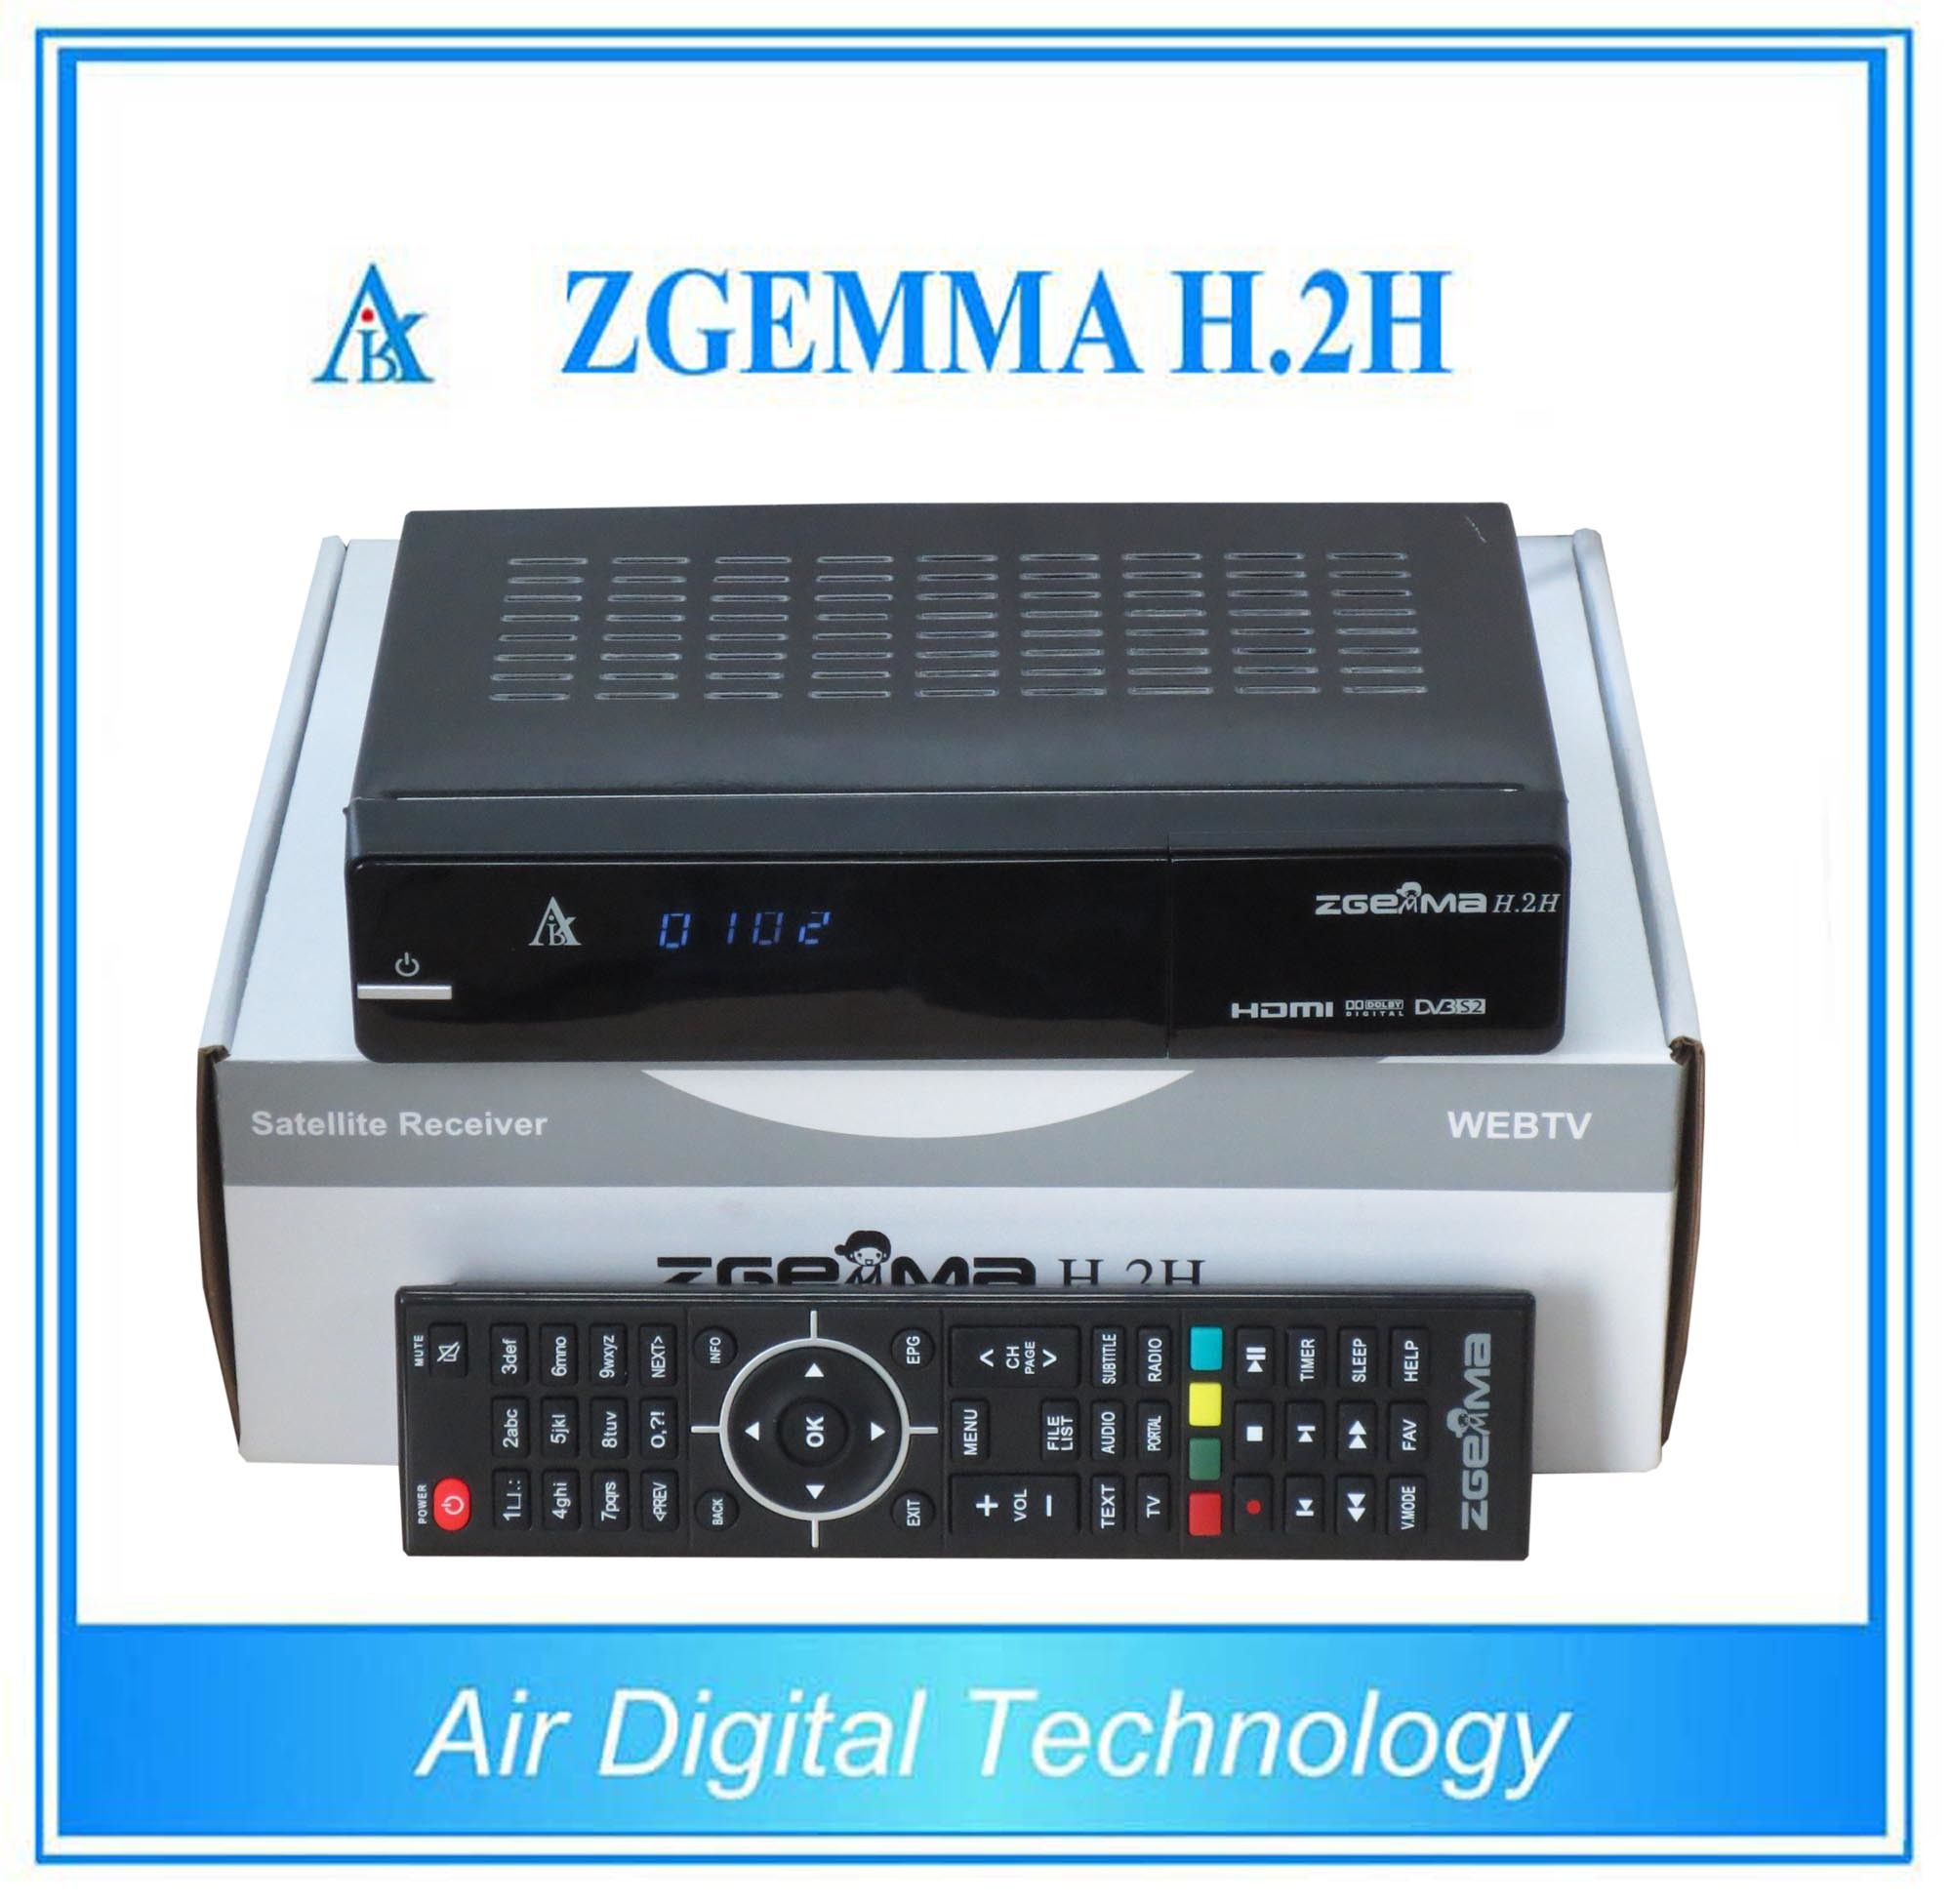 Digital Satellite Receiver DVB S2 + DVB T2 Satellite & Terrestrial Receiver with Dual Core CPU Zgemma H. 2h